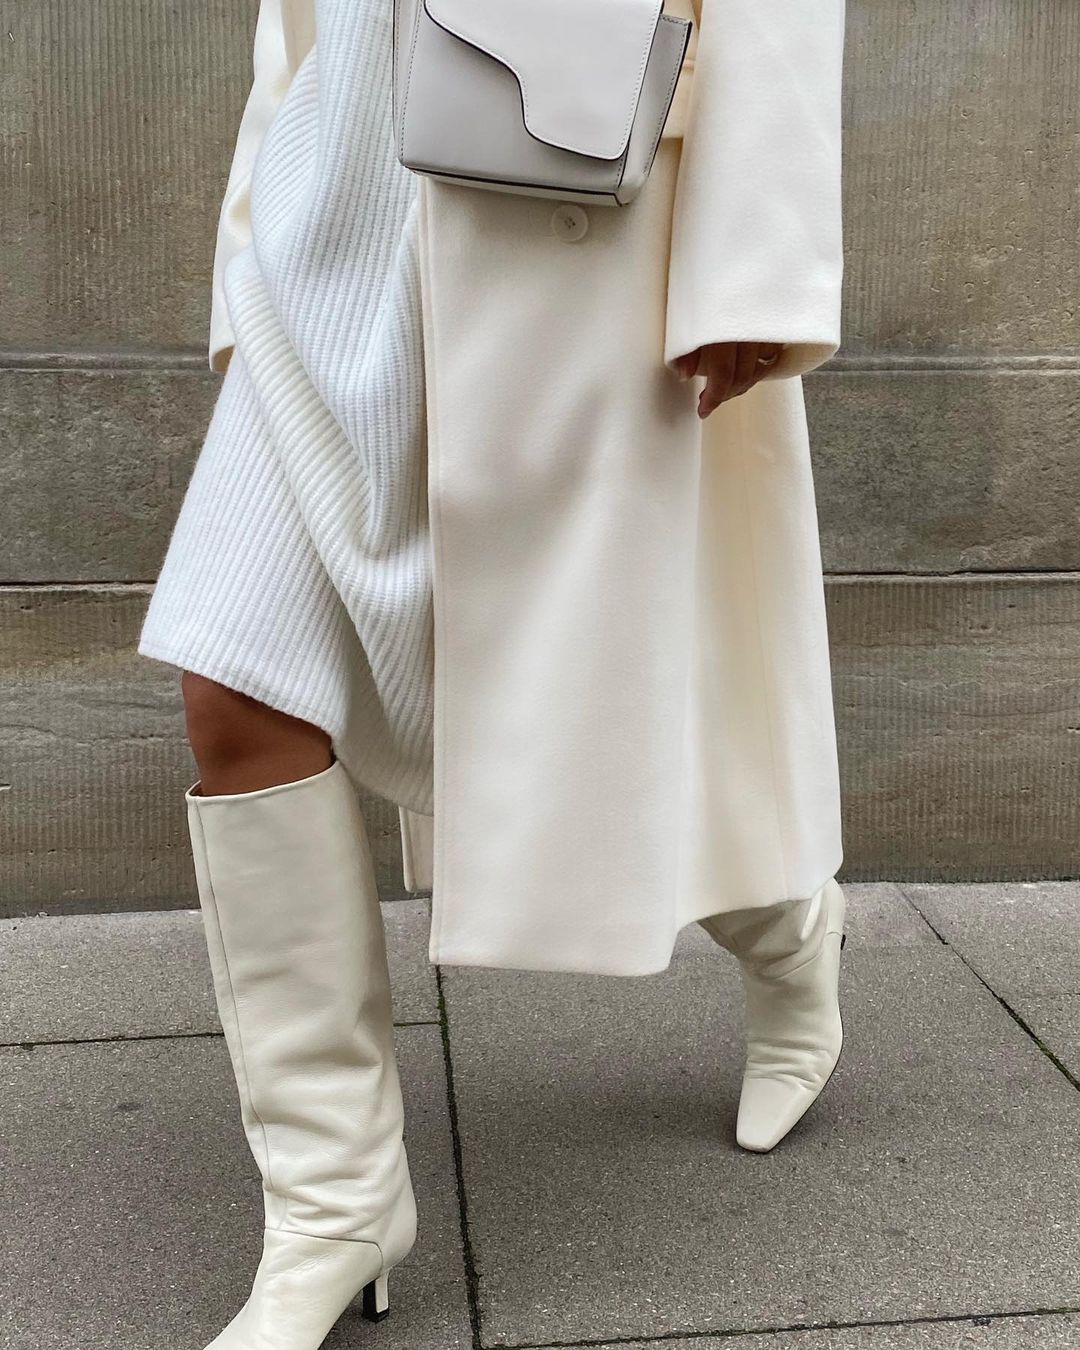 blogger, Jimmy Choo, and outfit image